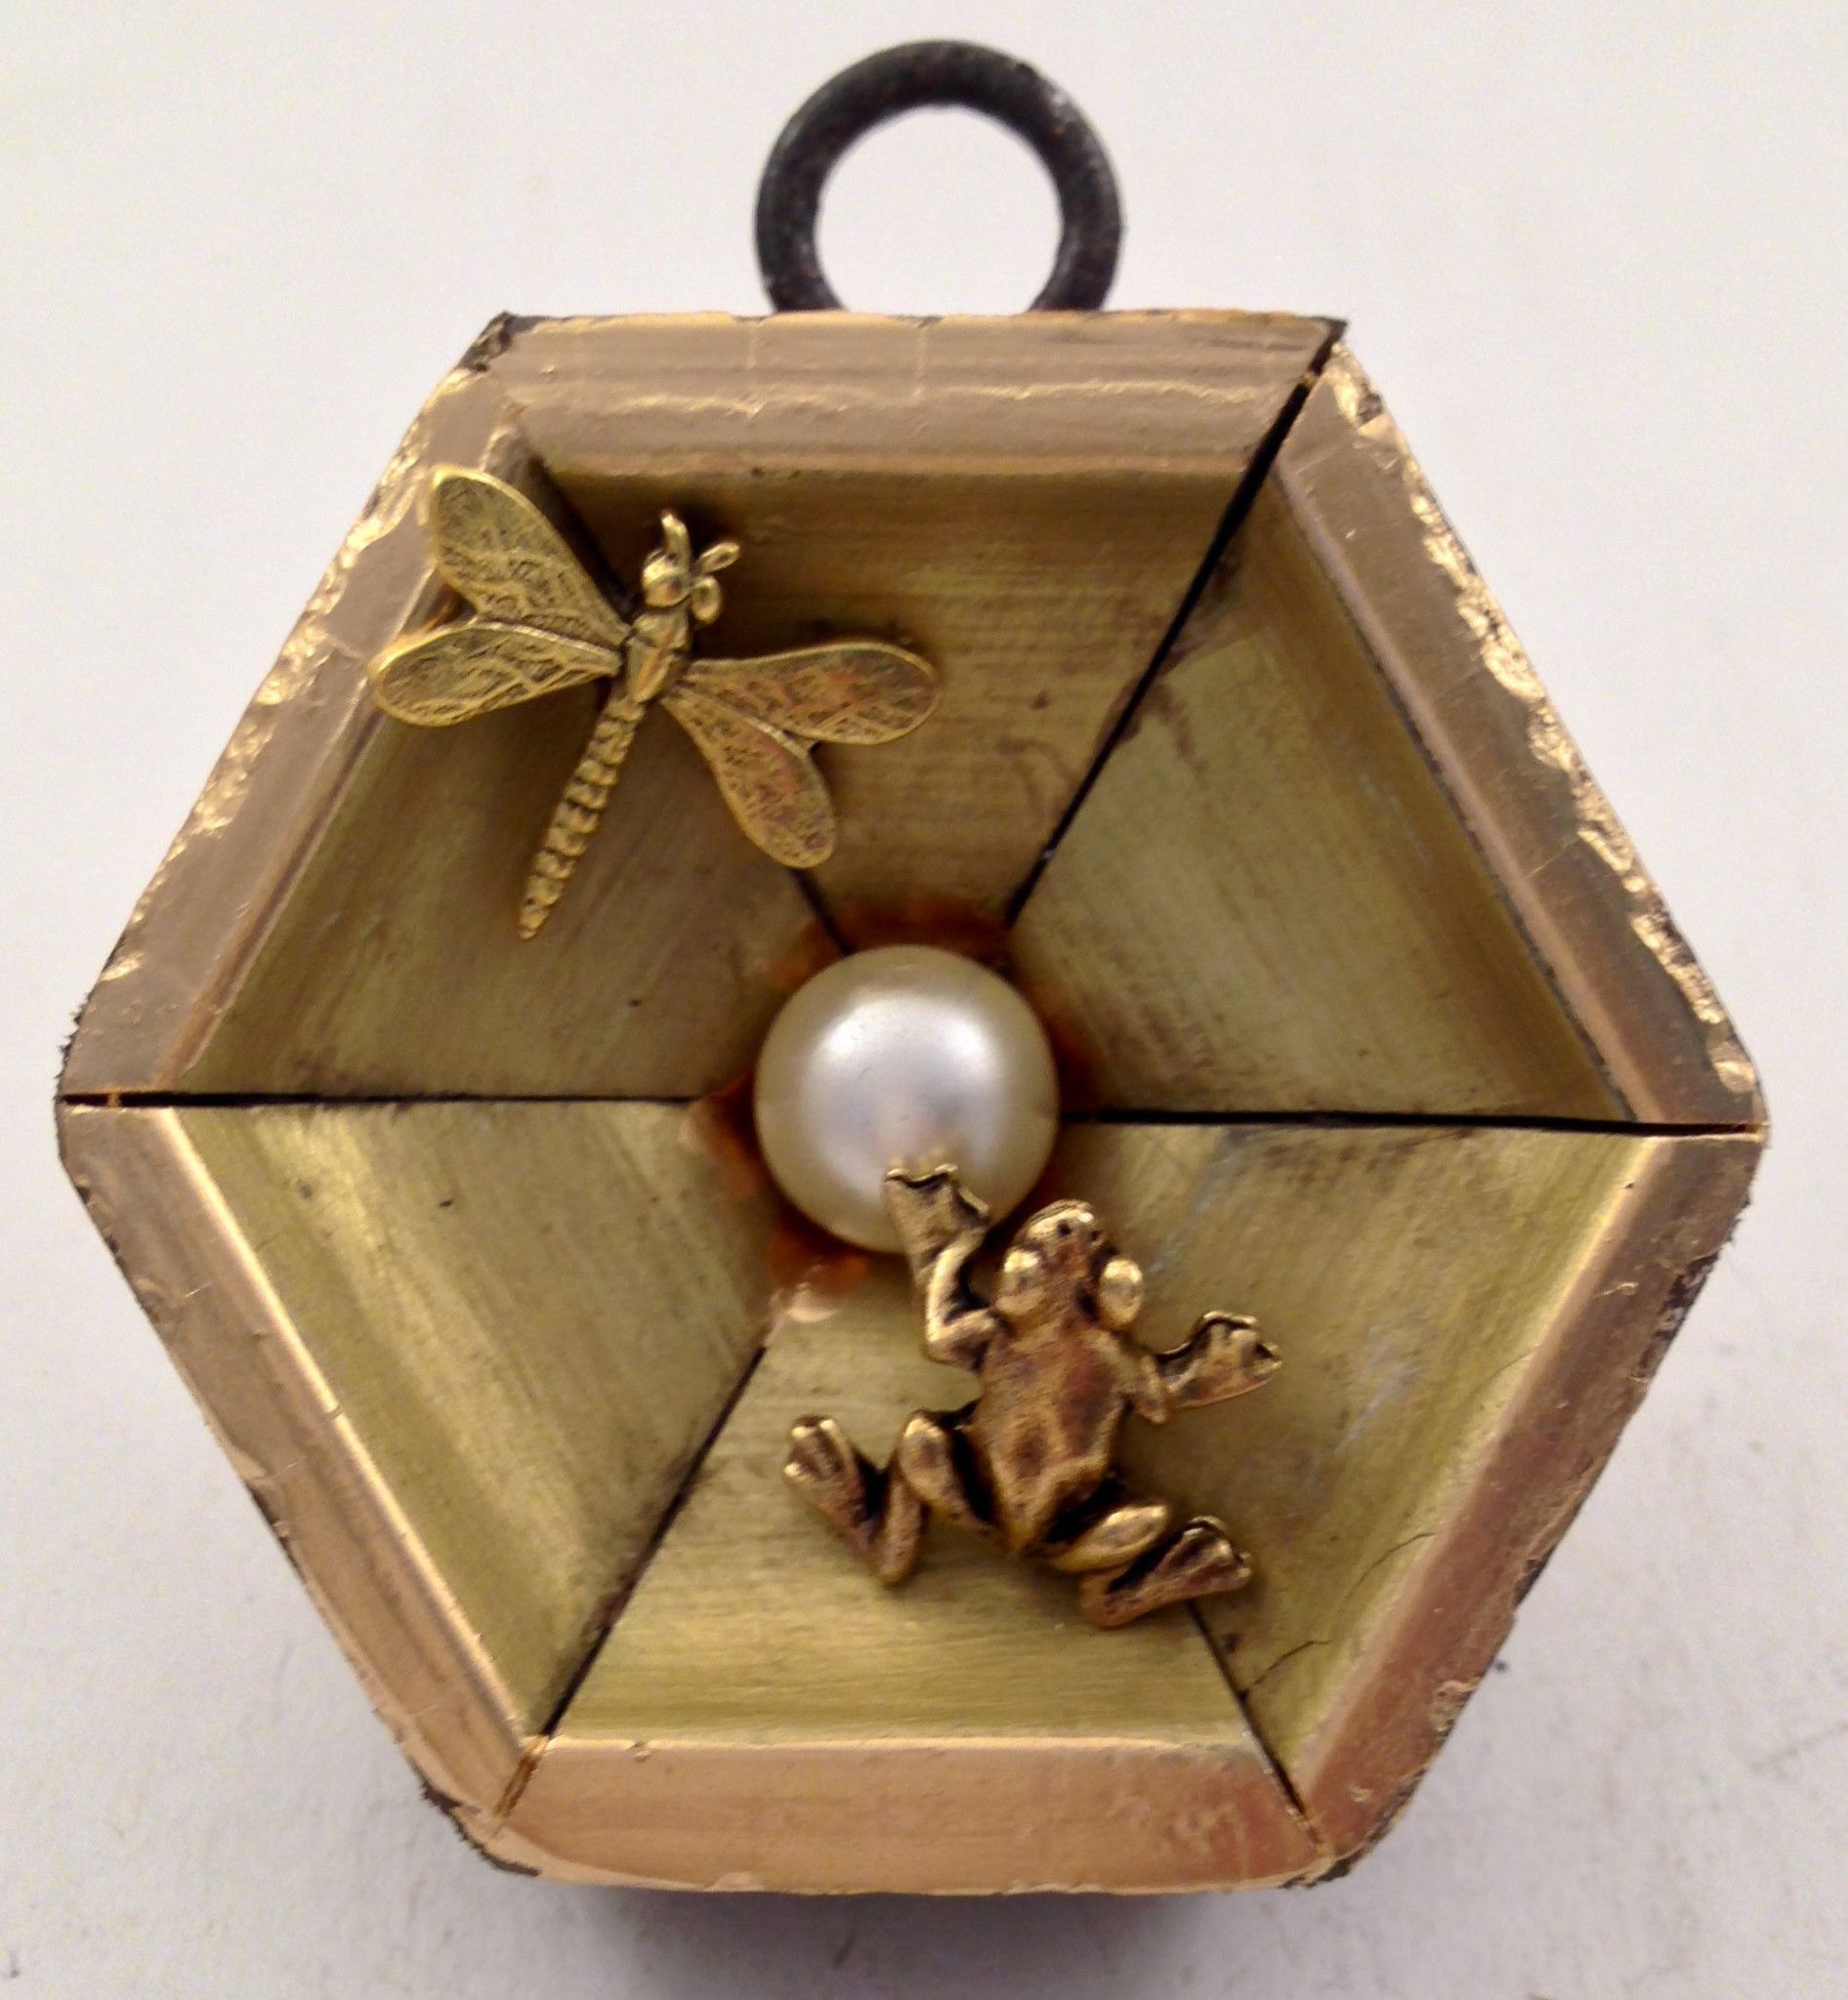 Hexagonal Gilt Frame with Pearl, Dragonfly, and Frog